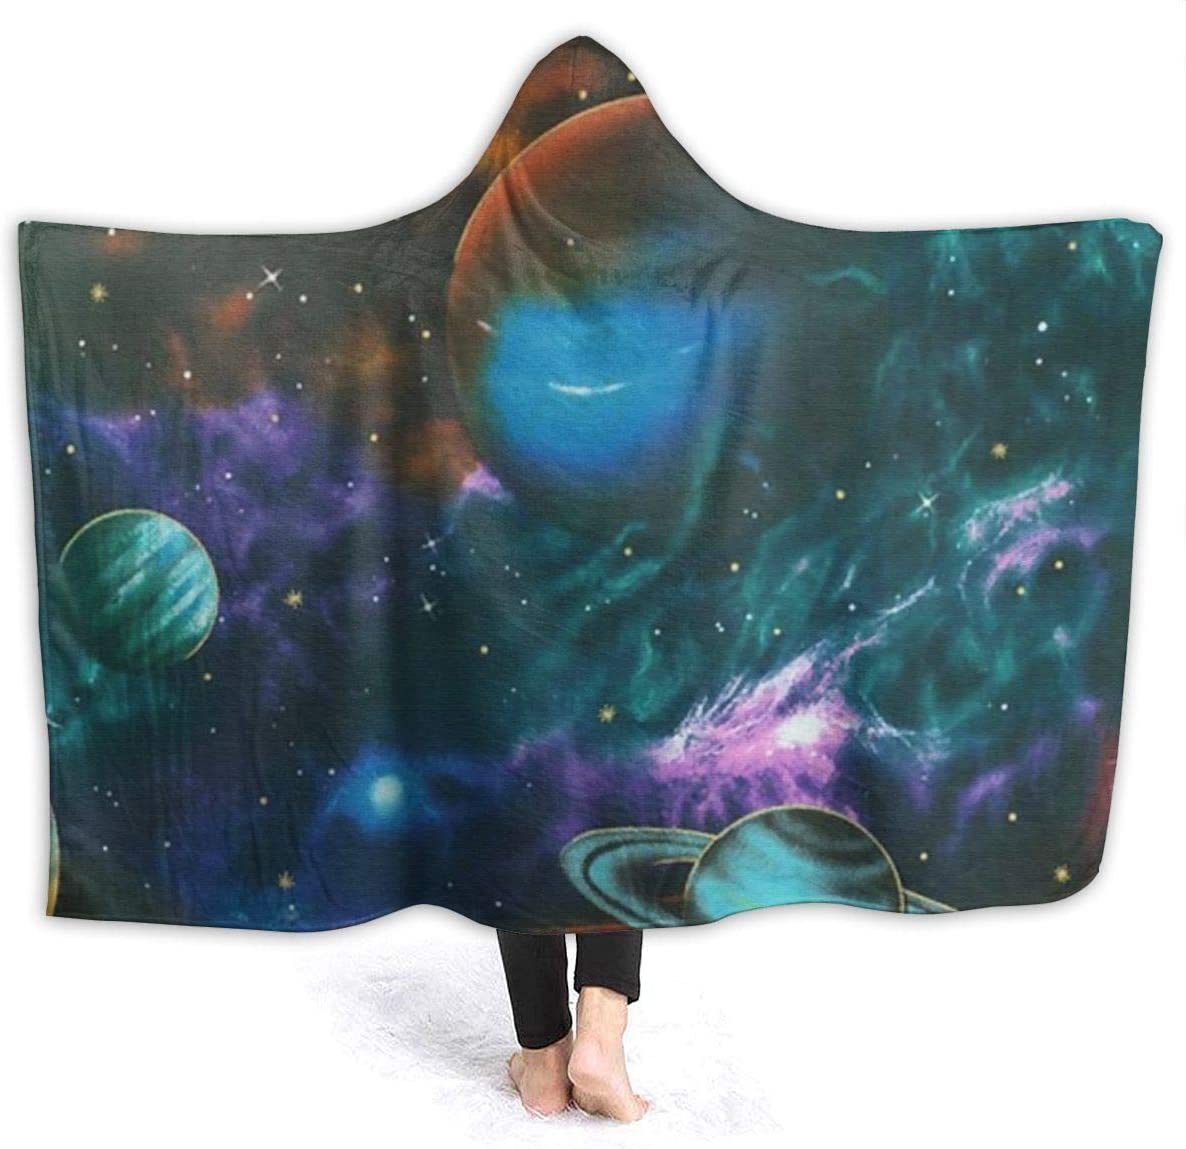 AUISS Warm Hoodie Blanket Planets Outer Space Hooded Throw Wrap Cape Cloak Robe Womens Thick School Travel Shawl Flannel with Sleeves